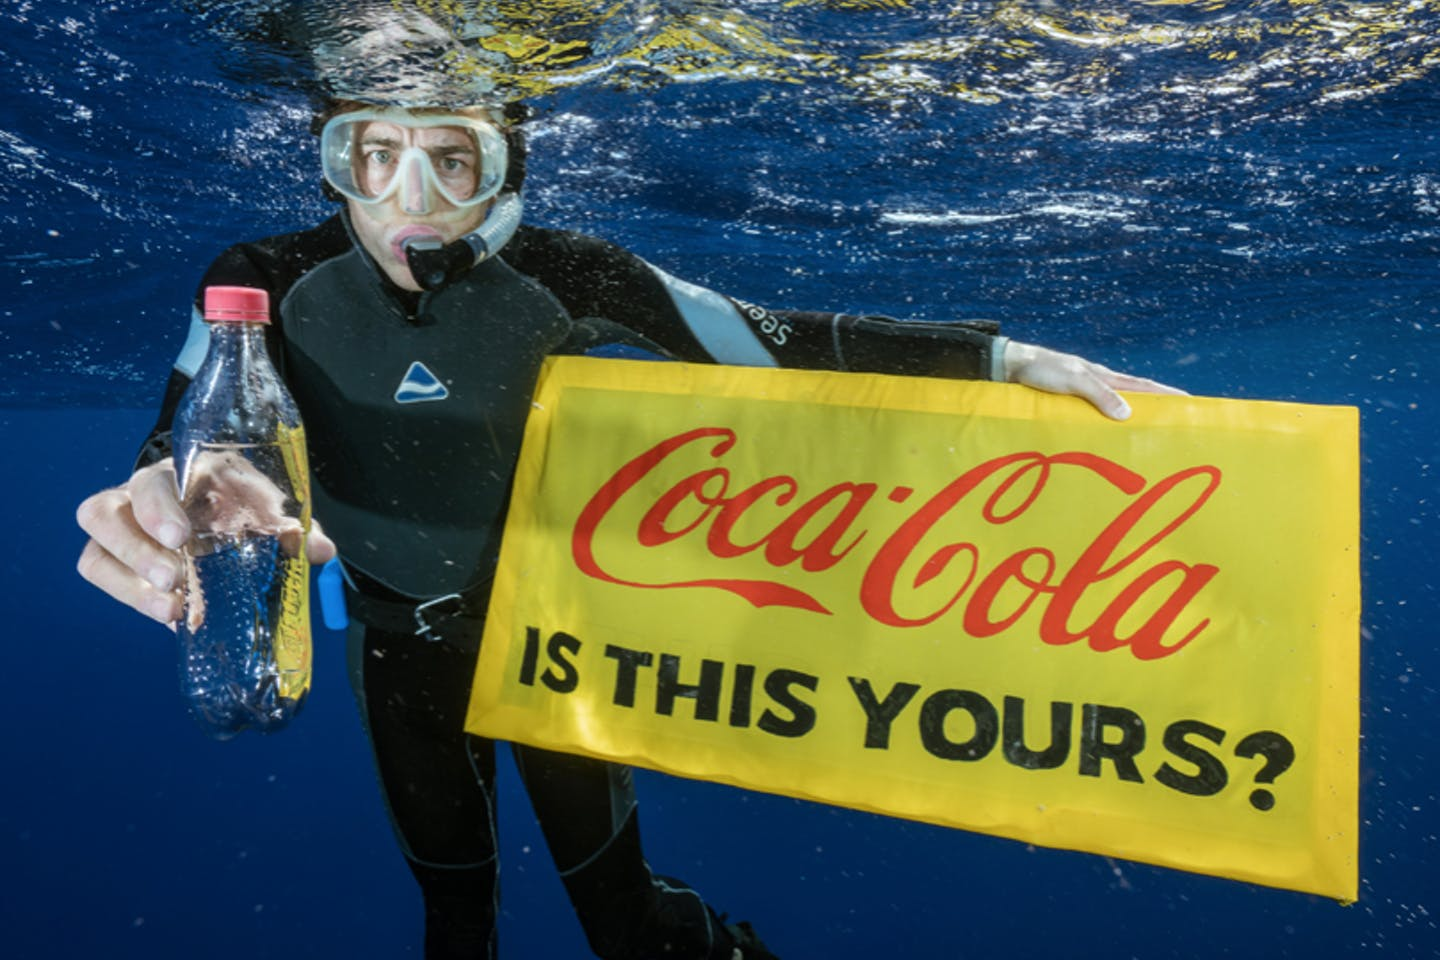 Coca-Cola is the world's biggest plastic polluter, according to 239 cleanups and brand audits conducted in 42 countries by Greenpeace. Image: Justin Hofman / Greenpeace